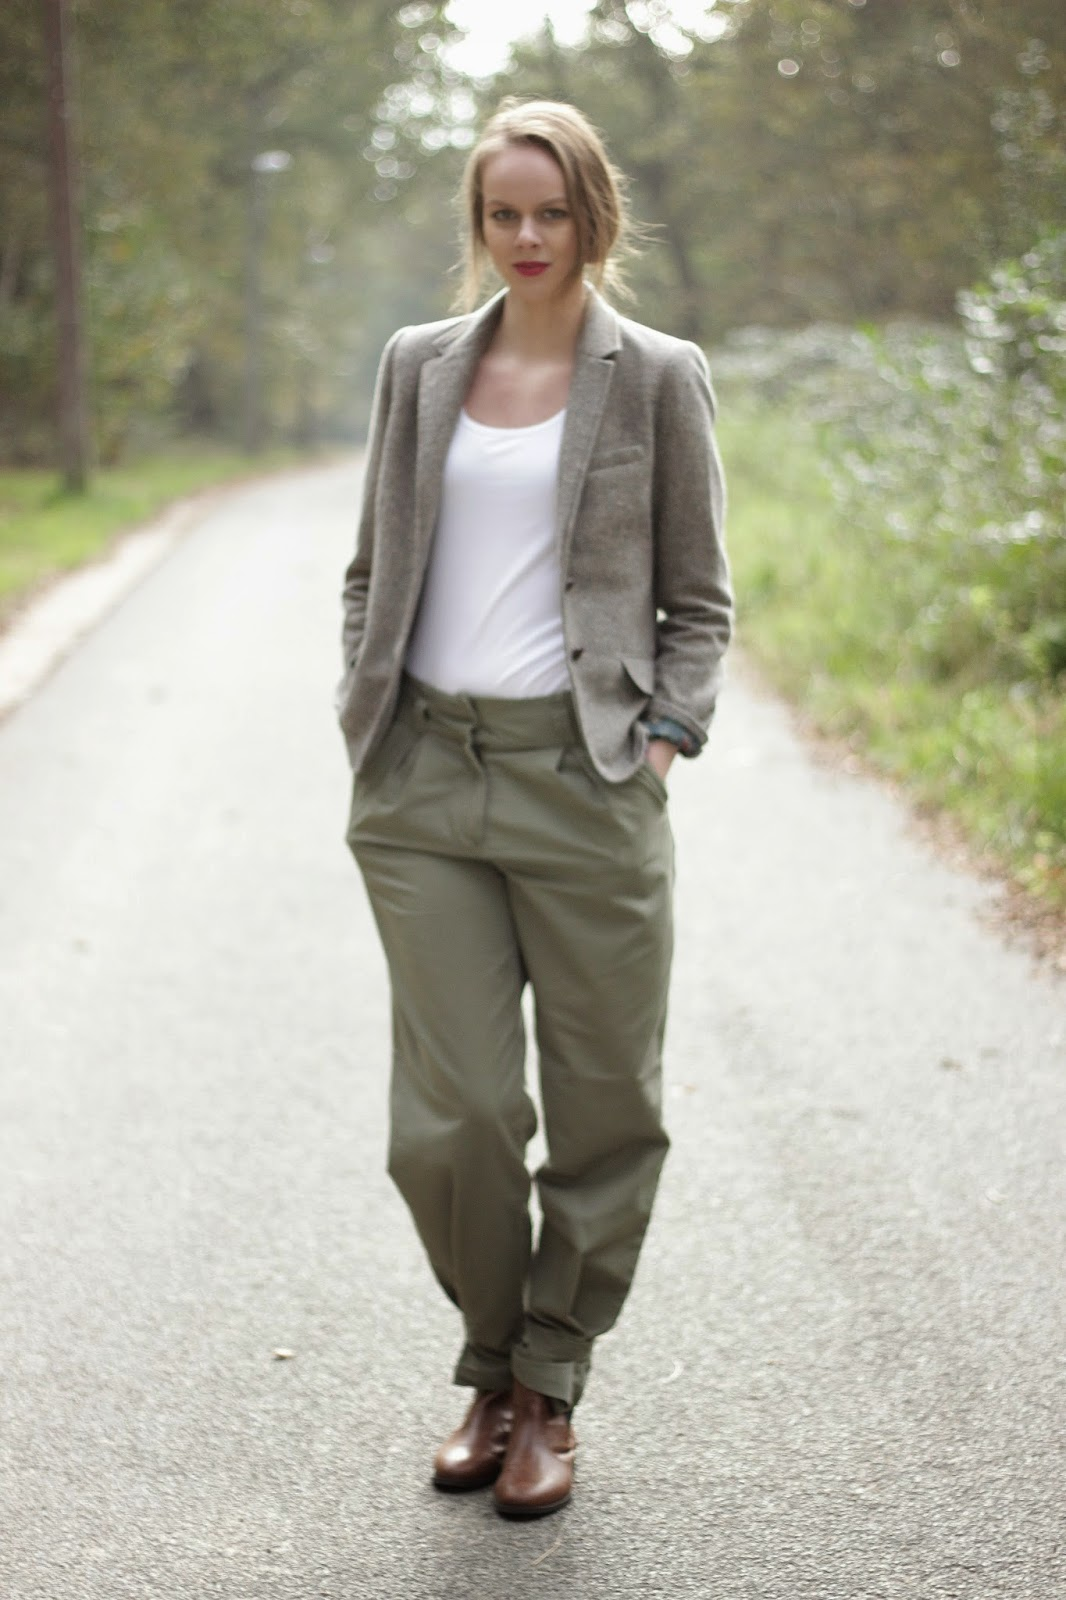 khaki outfit of the day